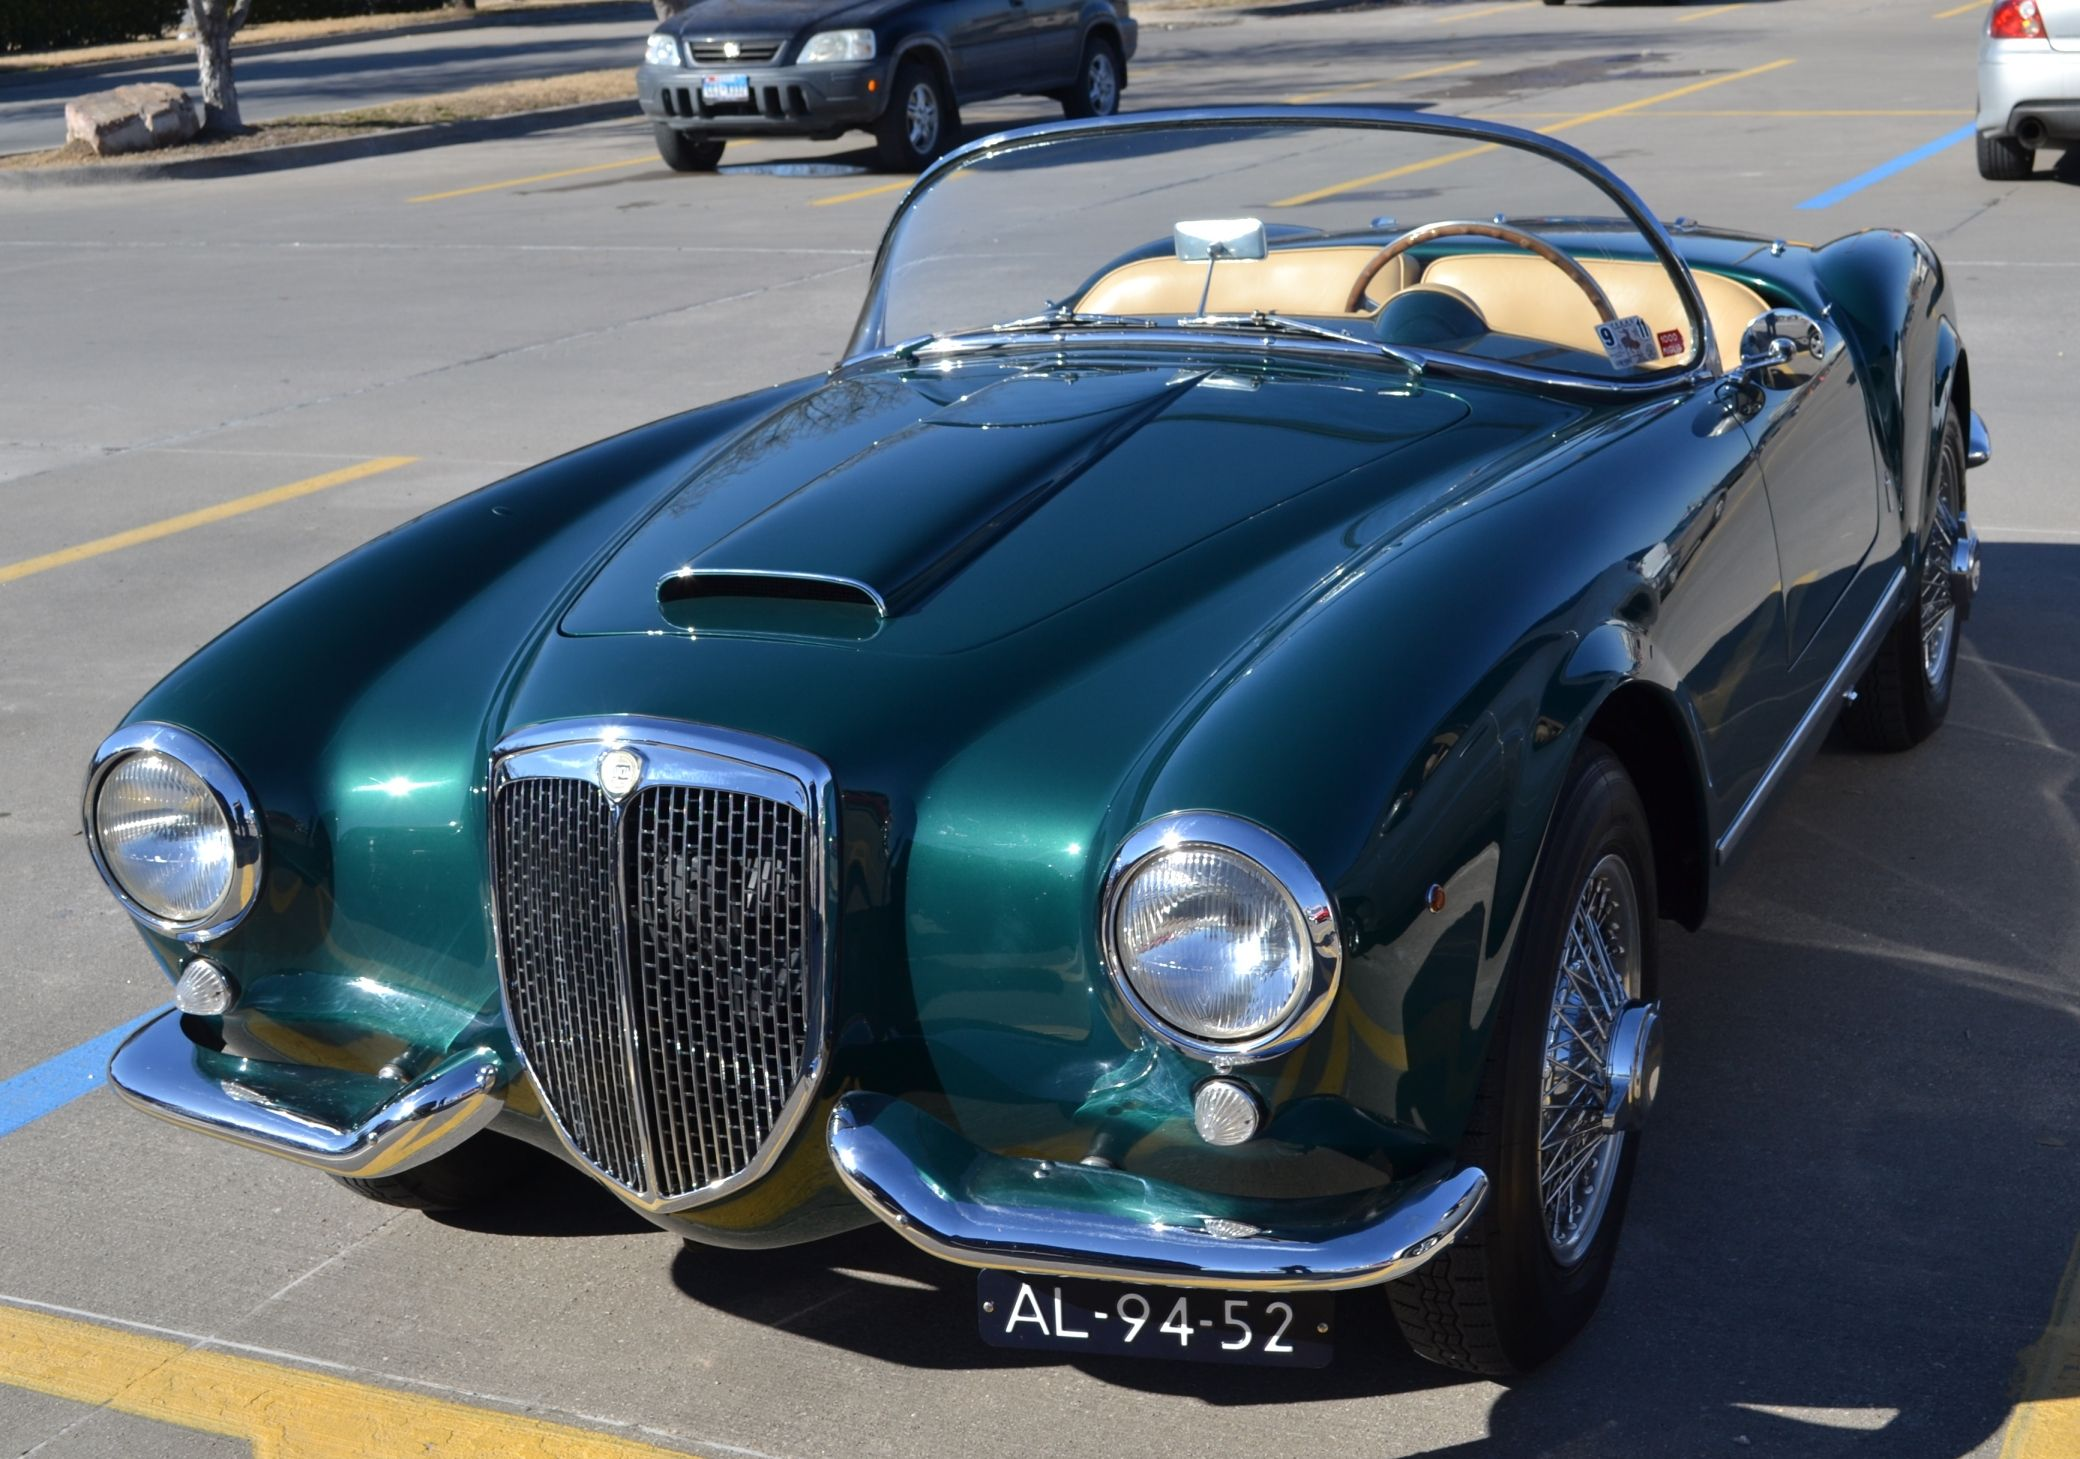 One More Cool Old Italian Sports Car - Classiest sports cars